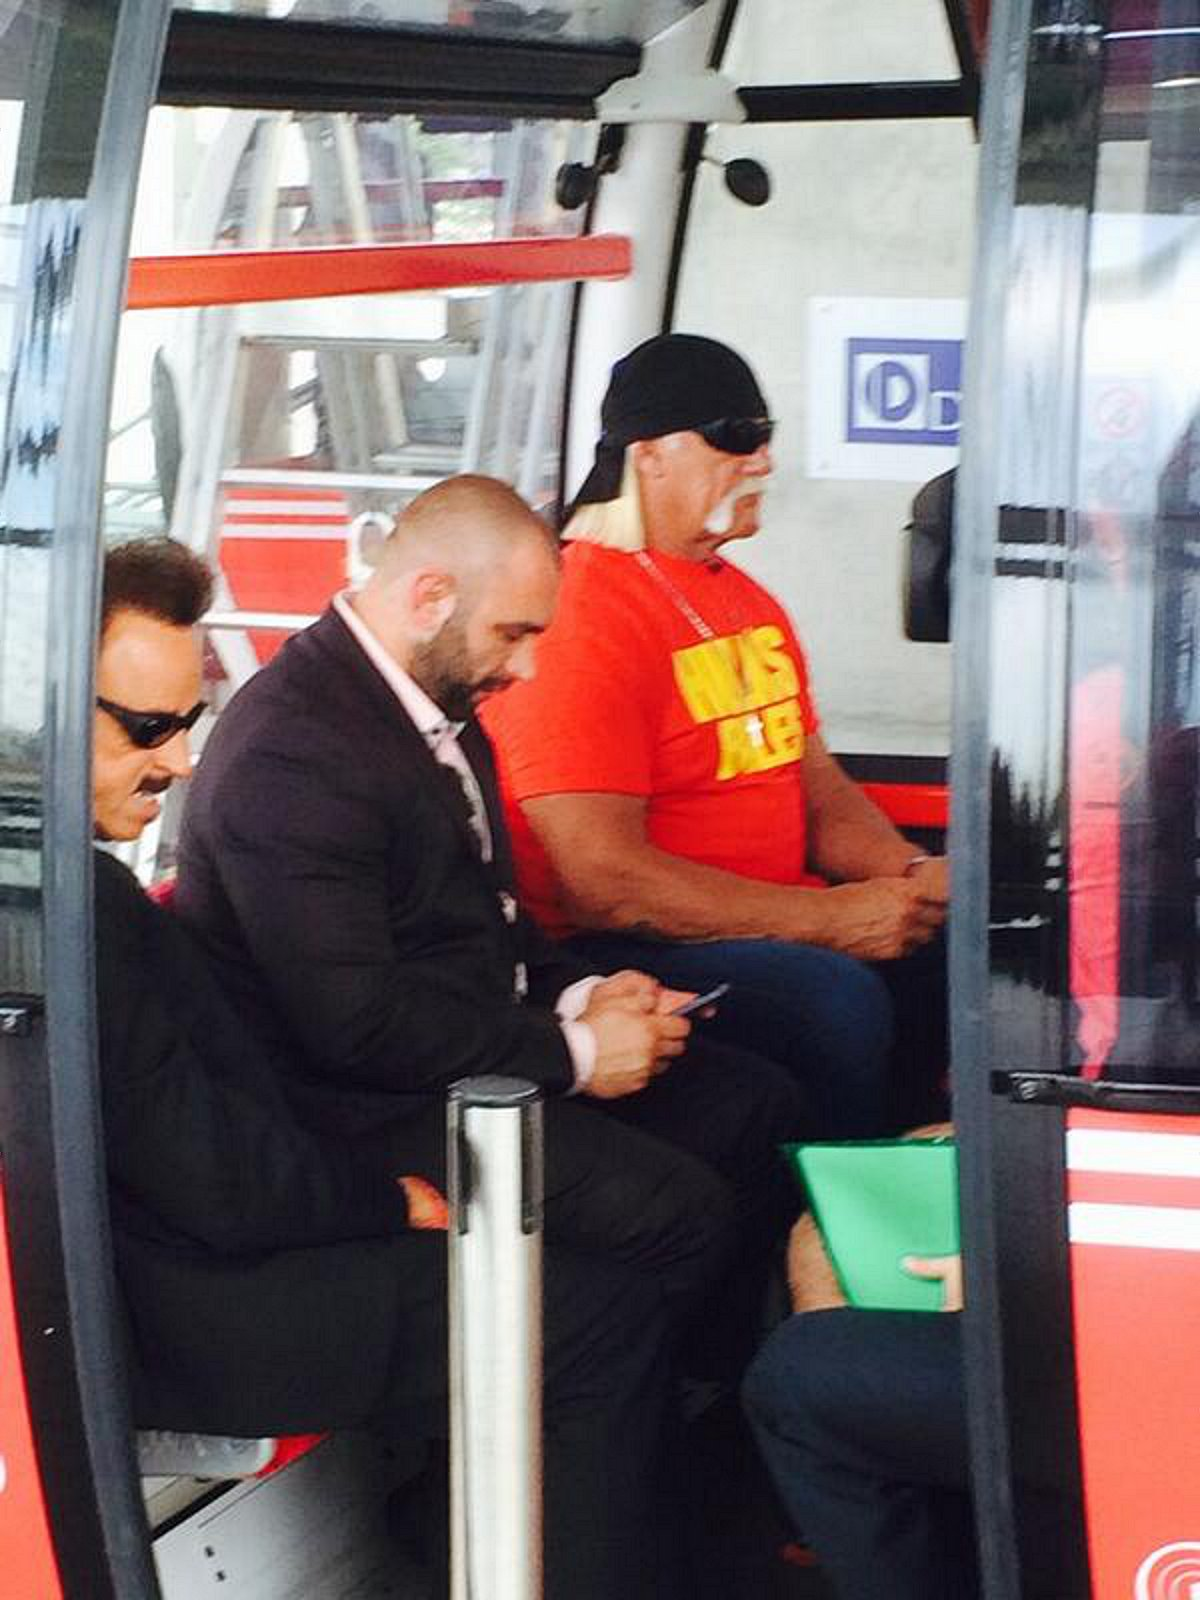 Hulk Hogan takes Greenwich cable car to The O2 for WWE WrestleMania